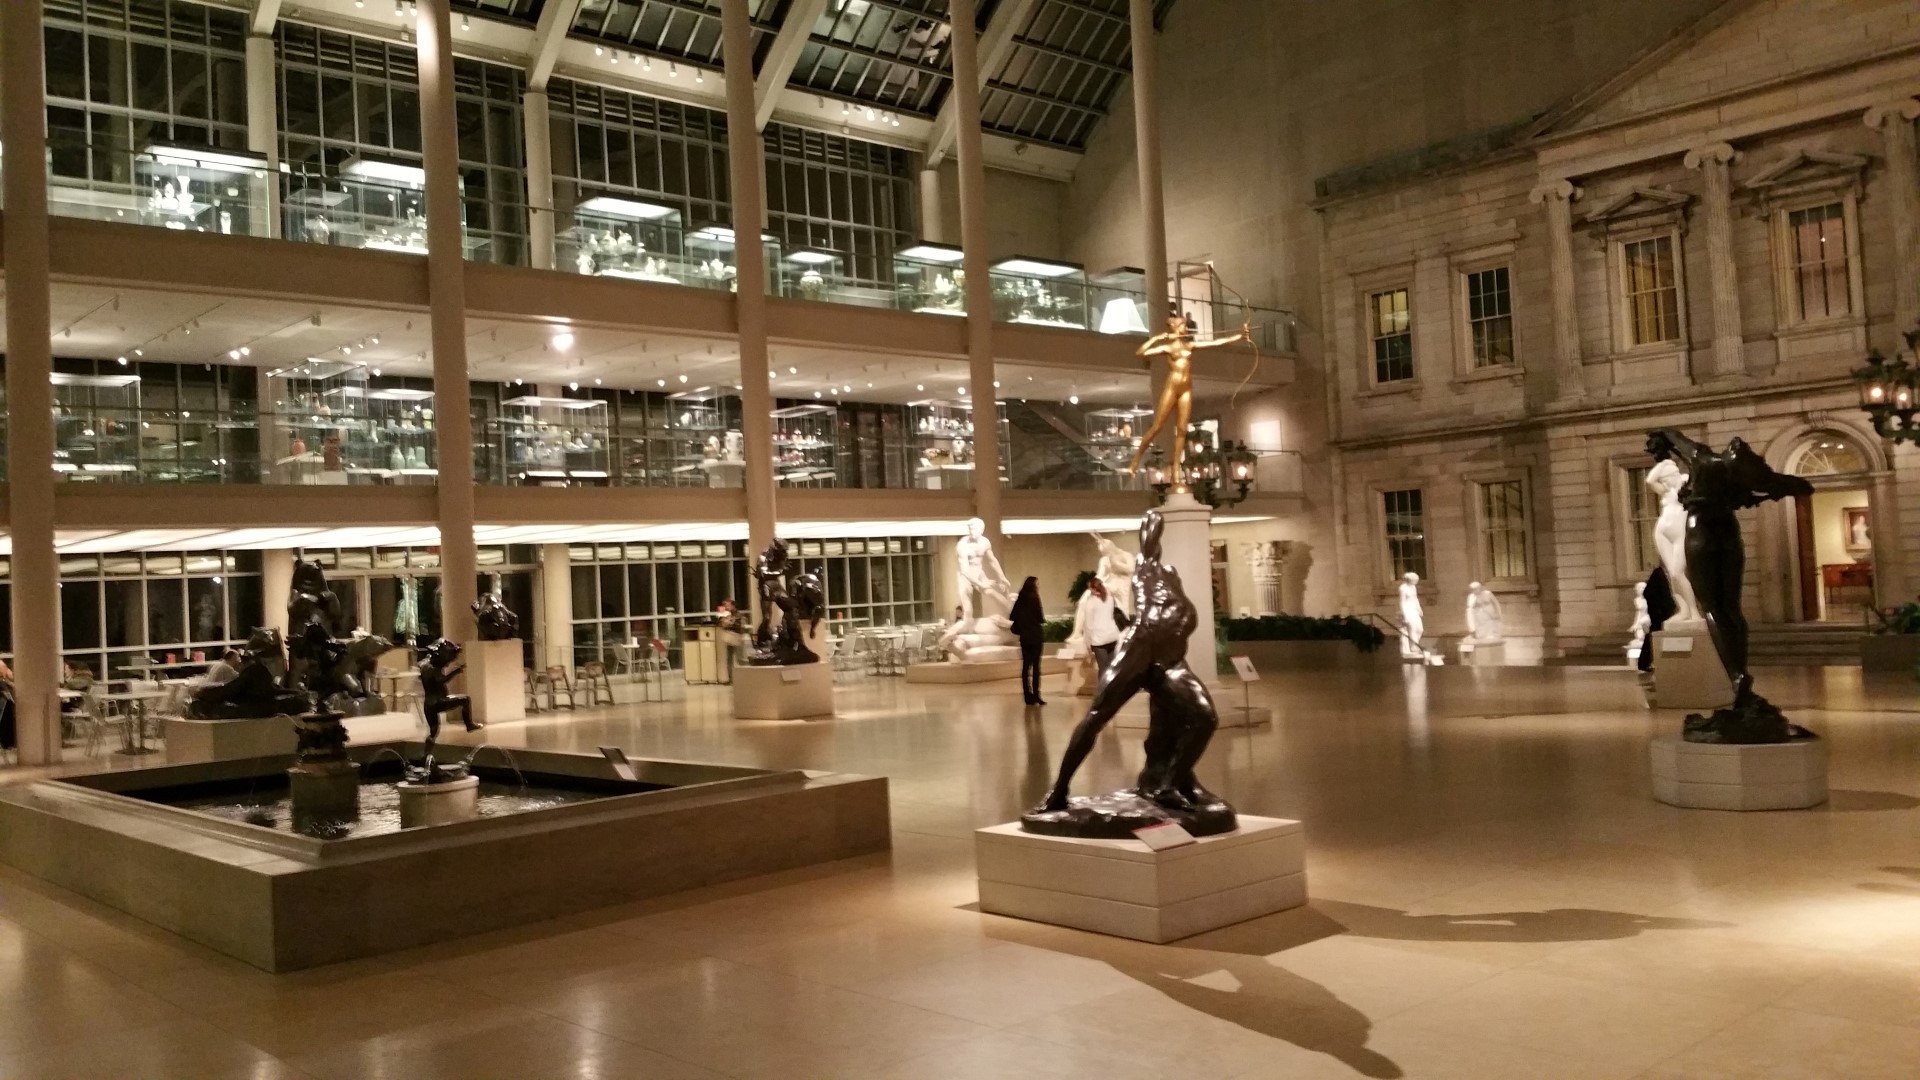 a day relaxing at the metropolitan museum of art After hours of exploring relax by a fountain in the indoor for the day on this vip tour the museum feels so at the metropolitan museum of art.